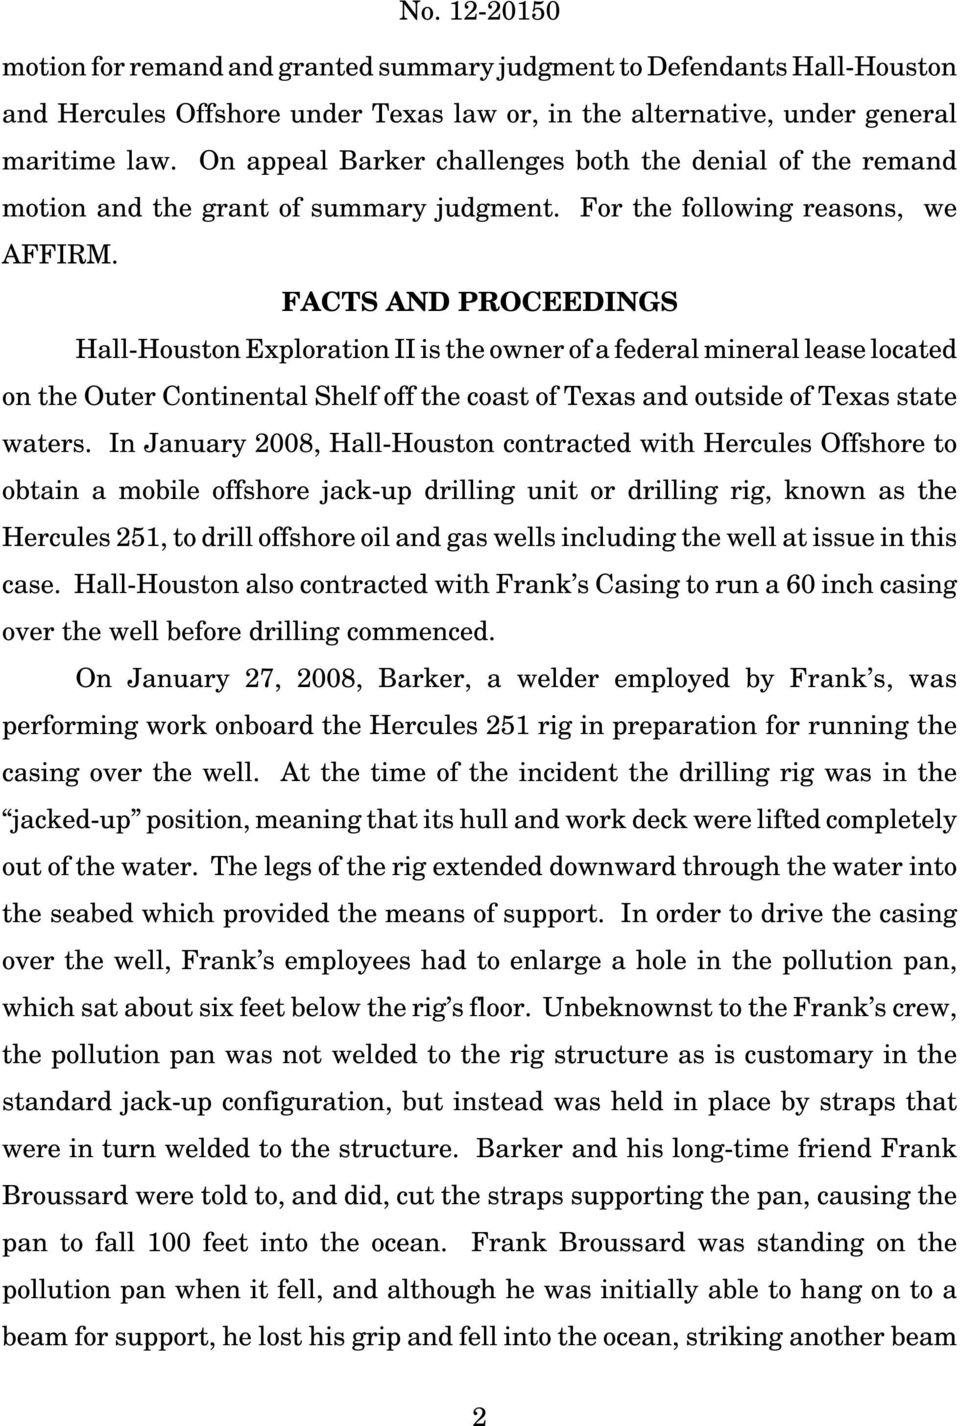 FACTS AND PROCEEDINGS Hall-Houston Exploration II is the owner of a federal mineral lease located on the Outer Continental Shelf off the coast of Texas and outside of Texas state waters.